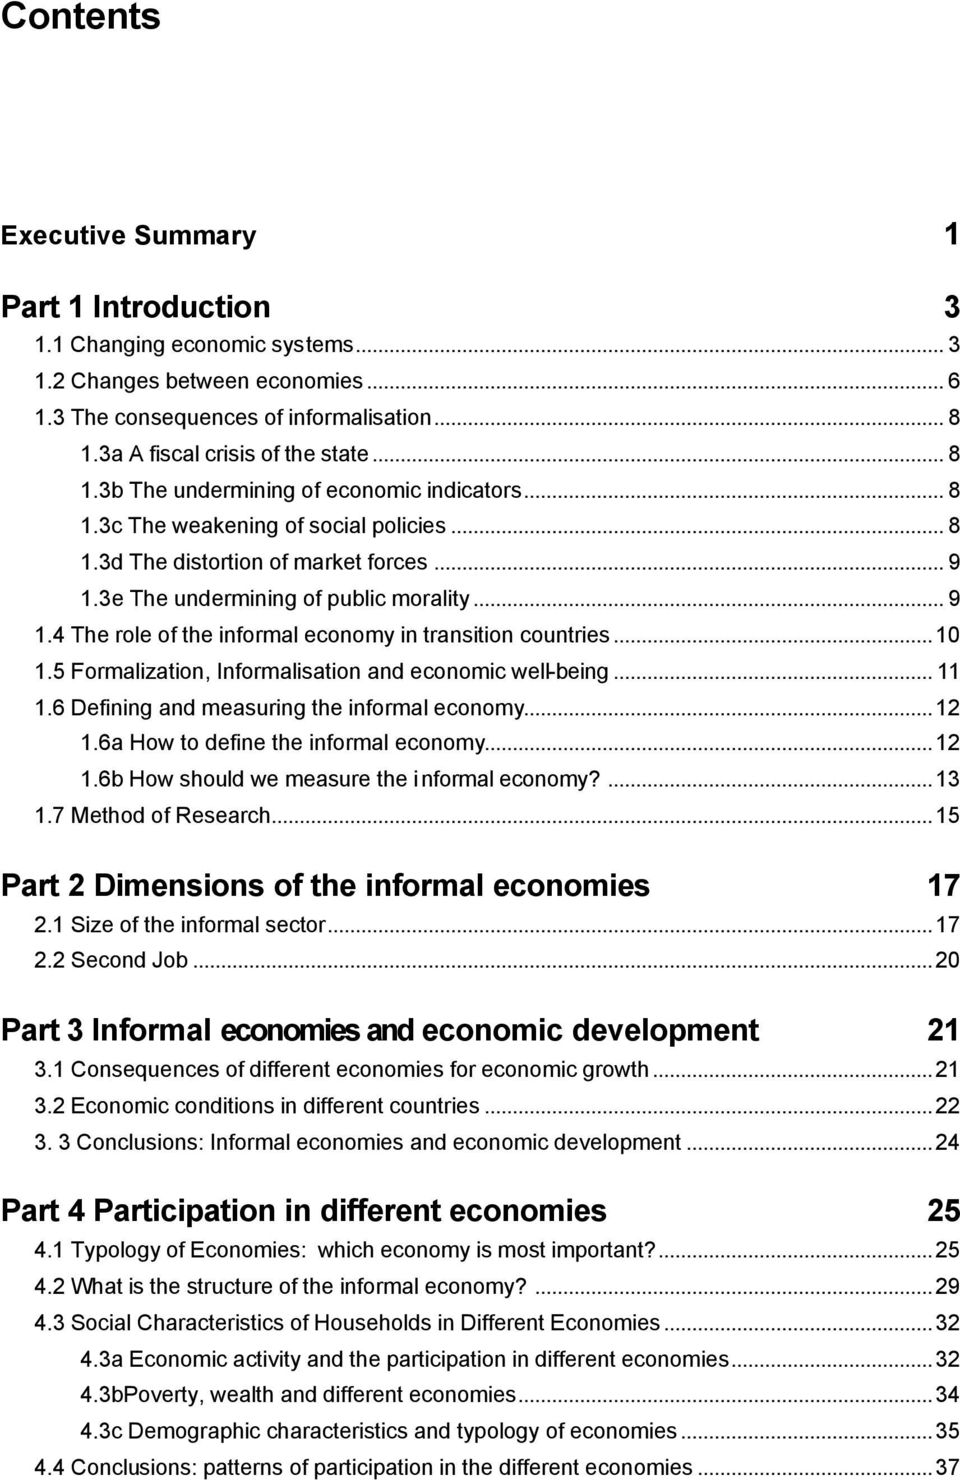 ..10 1.5 Formalization, Informalisation and economic well-being... 11 1.6 Defining and measuring the informal economy...12 1.6a How to define the informal economy...12 1.6b How should we measure the informal economy?